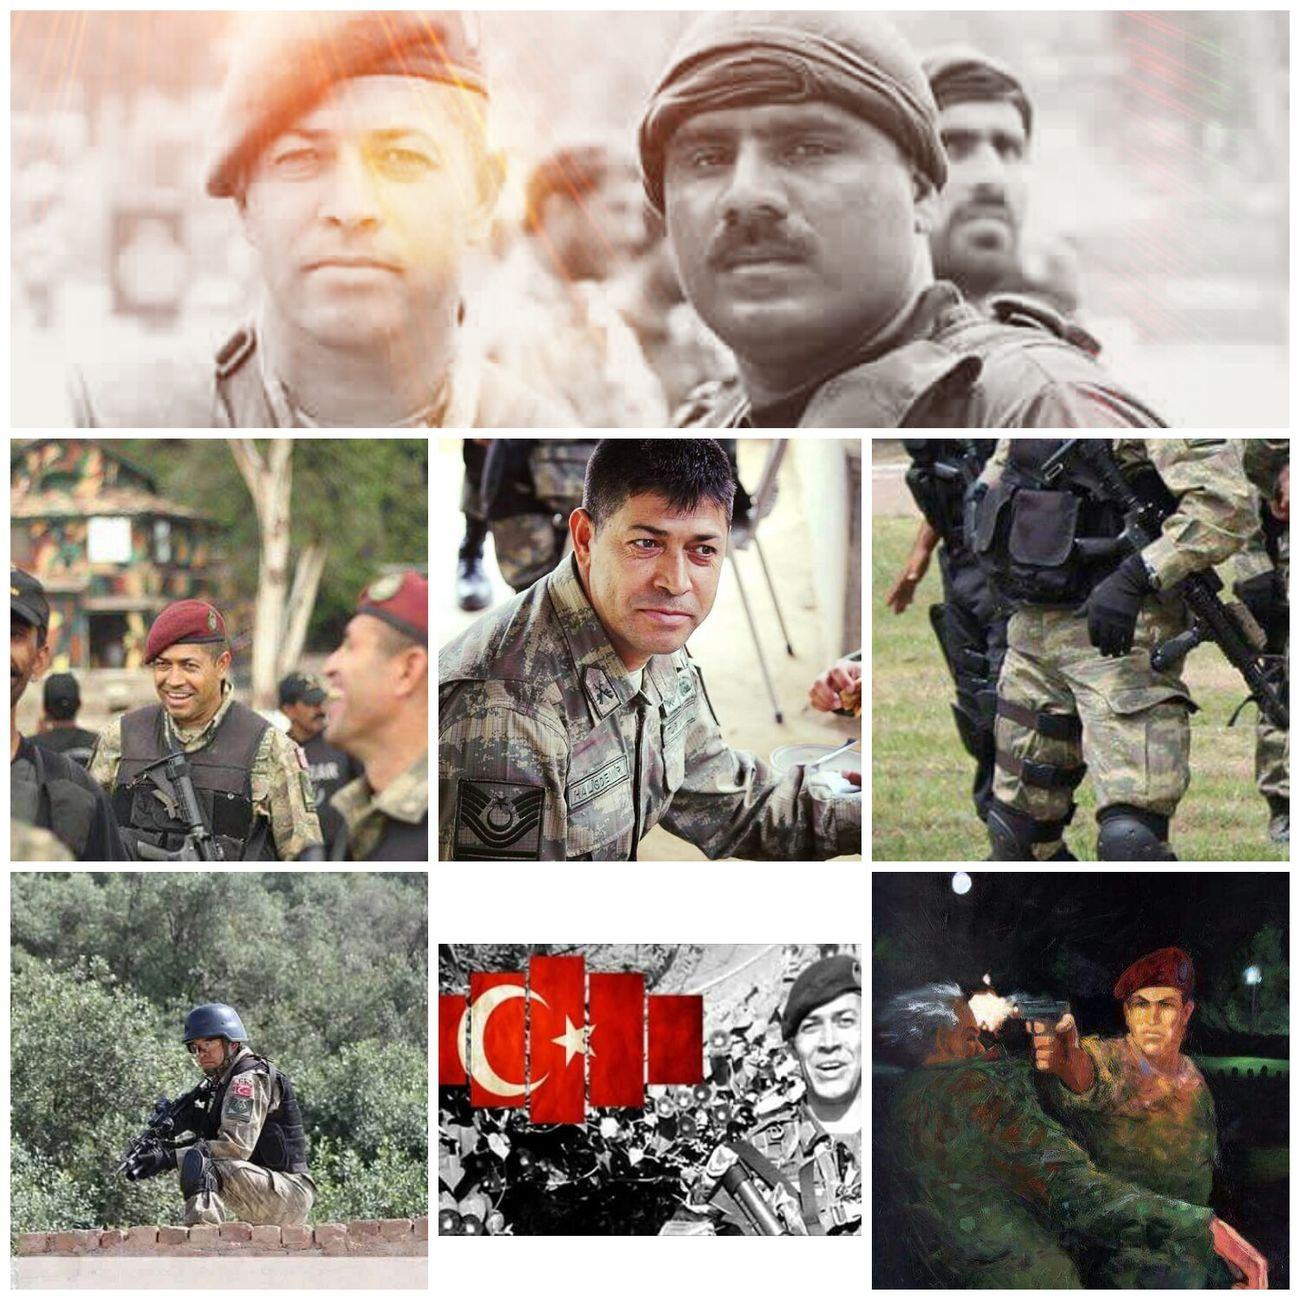 Ömerhalisdemir şehitler Iyi Insanlardır Ve Iyilikle Karşılanır Allah Rahmet Eylesin 16temmuzsehitleri First Eyeem Photo Looking At Camera Godmorning Turkishspecialforces TurkishSoldiers şehitler ölmez Vatan Bölünmez